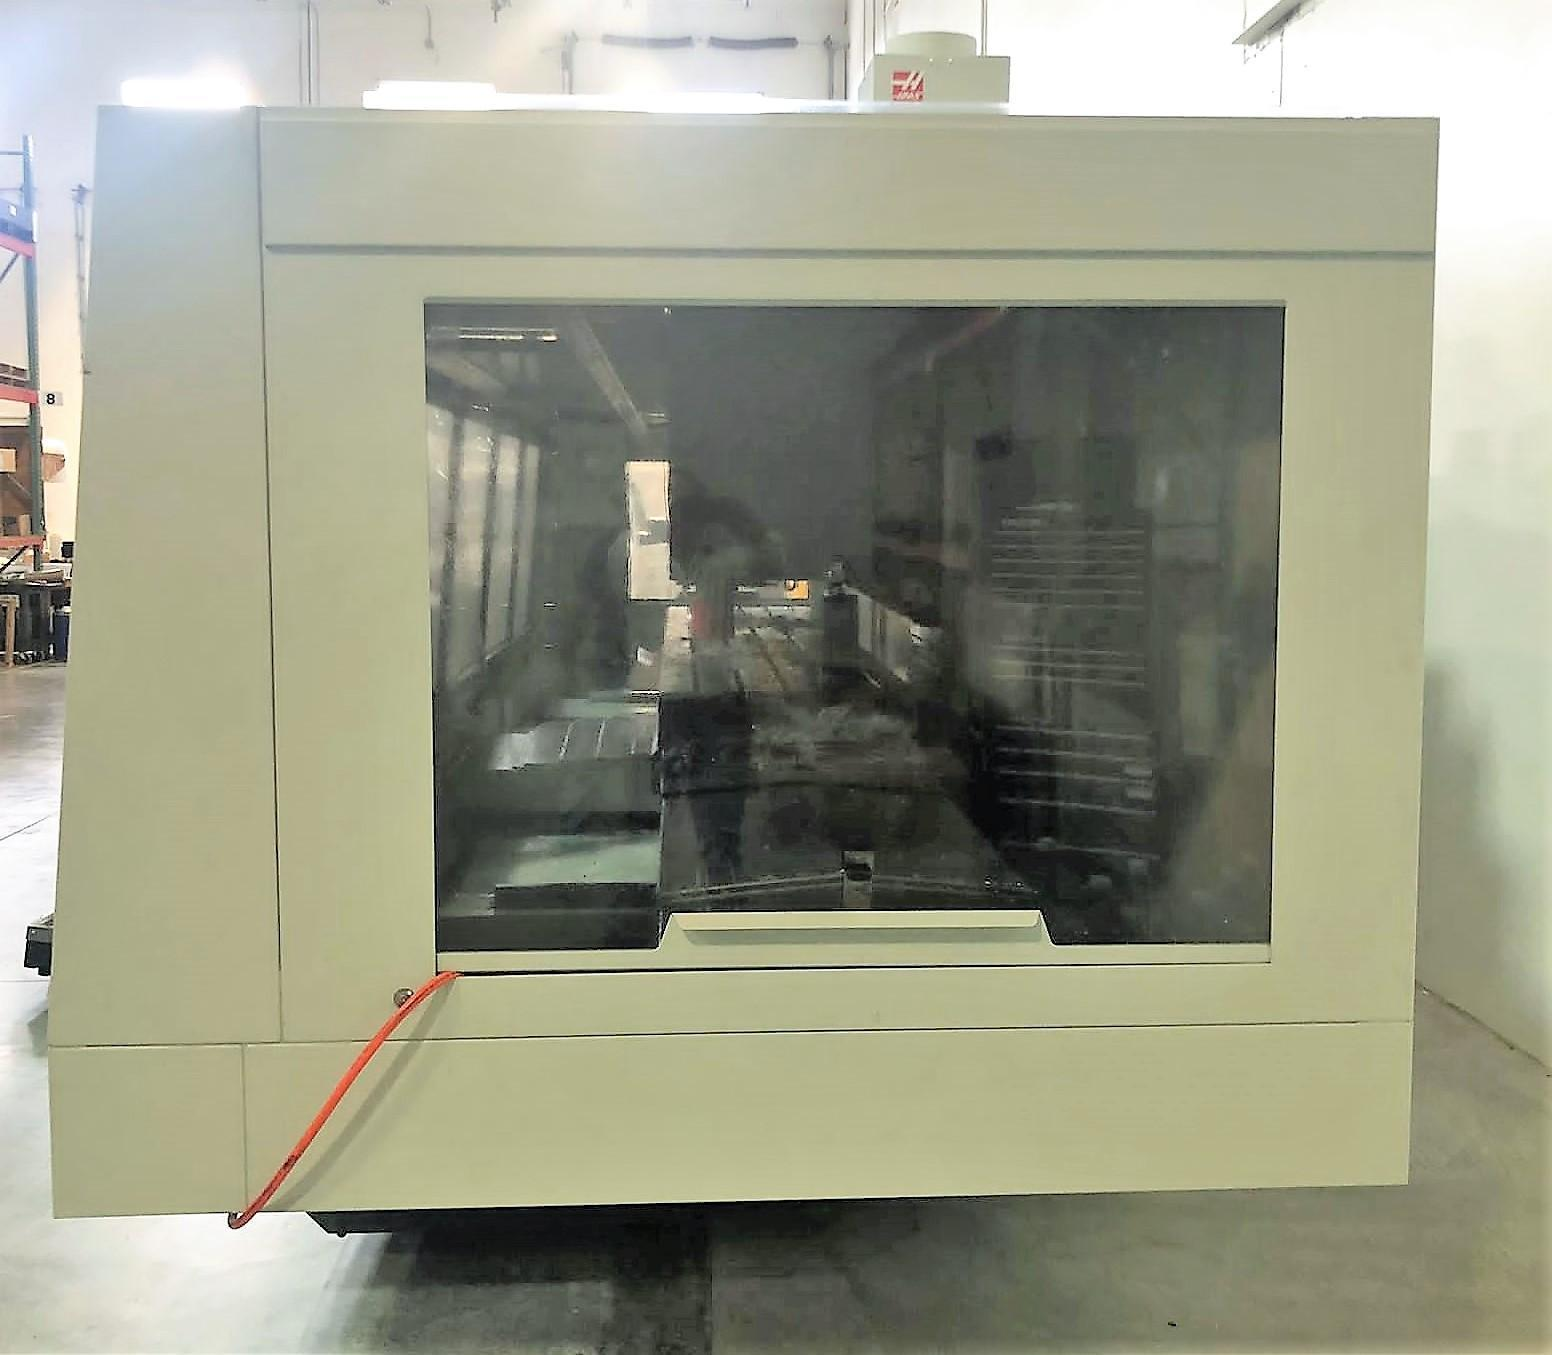 Haas VF-12/40 VMC 2019 With: 4th Axis Drive, Through Spindle Coolant, Wireless Probing System, High Speed Machining, and 32-GB Expanded Memory.